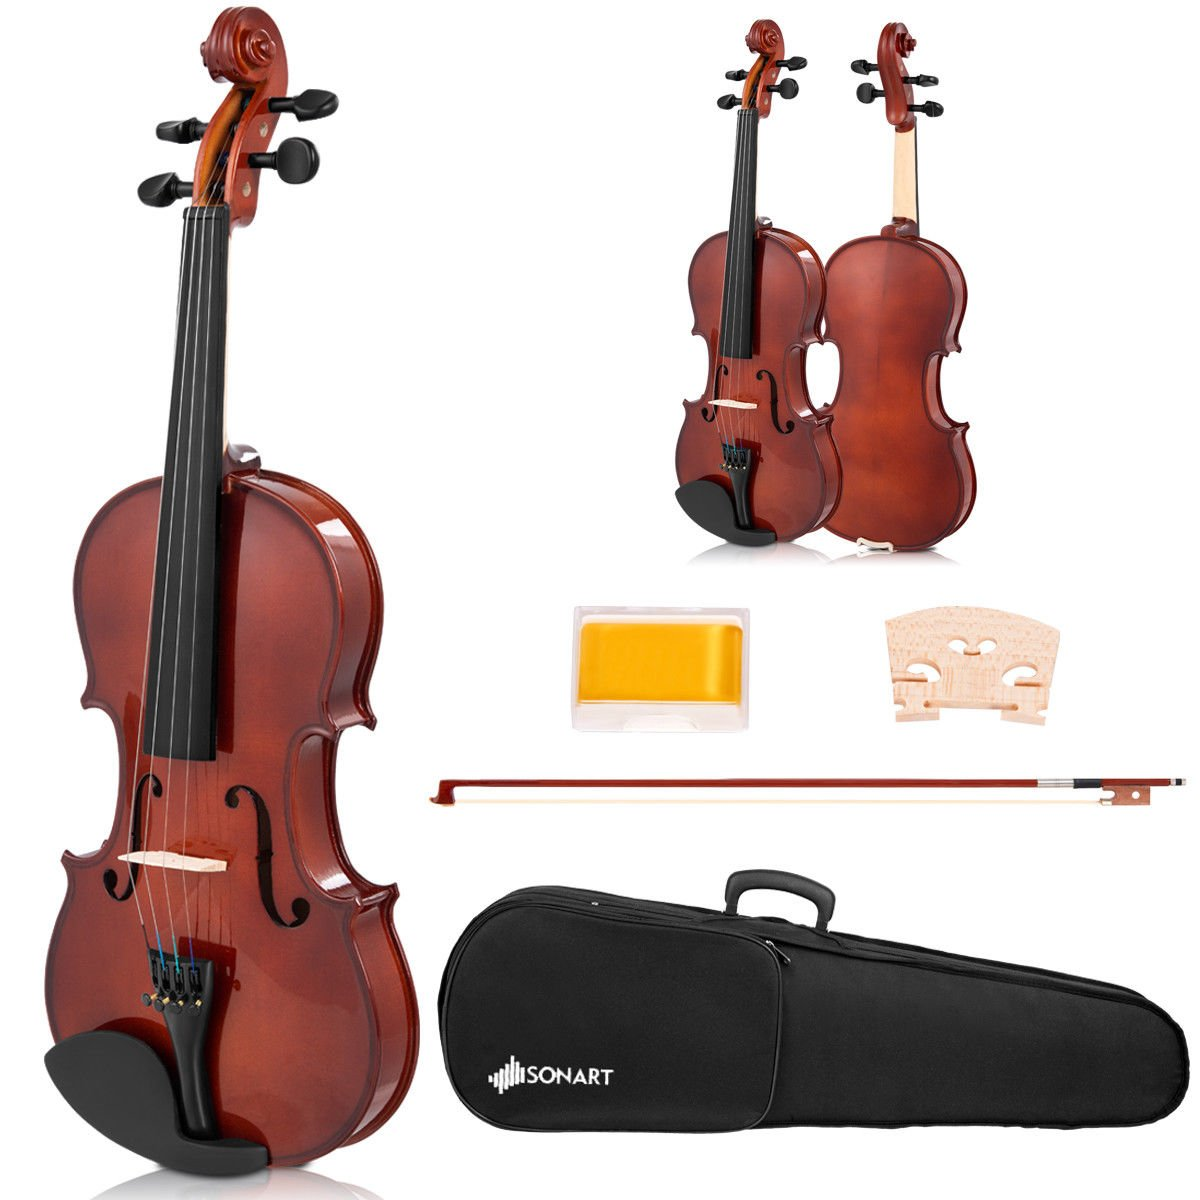 Costzon 4/4 Natural Solidwood Violin, Retro violin, Fitted Violin Outfit Set with Hard Case, Bow, Rosin, Bridge for Beginner Student